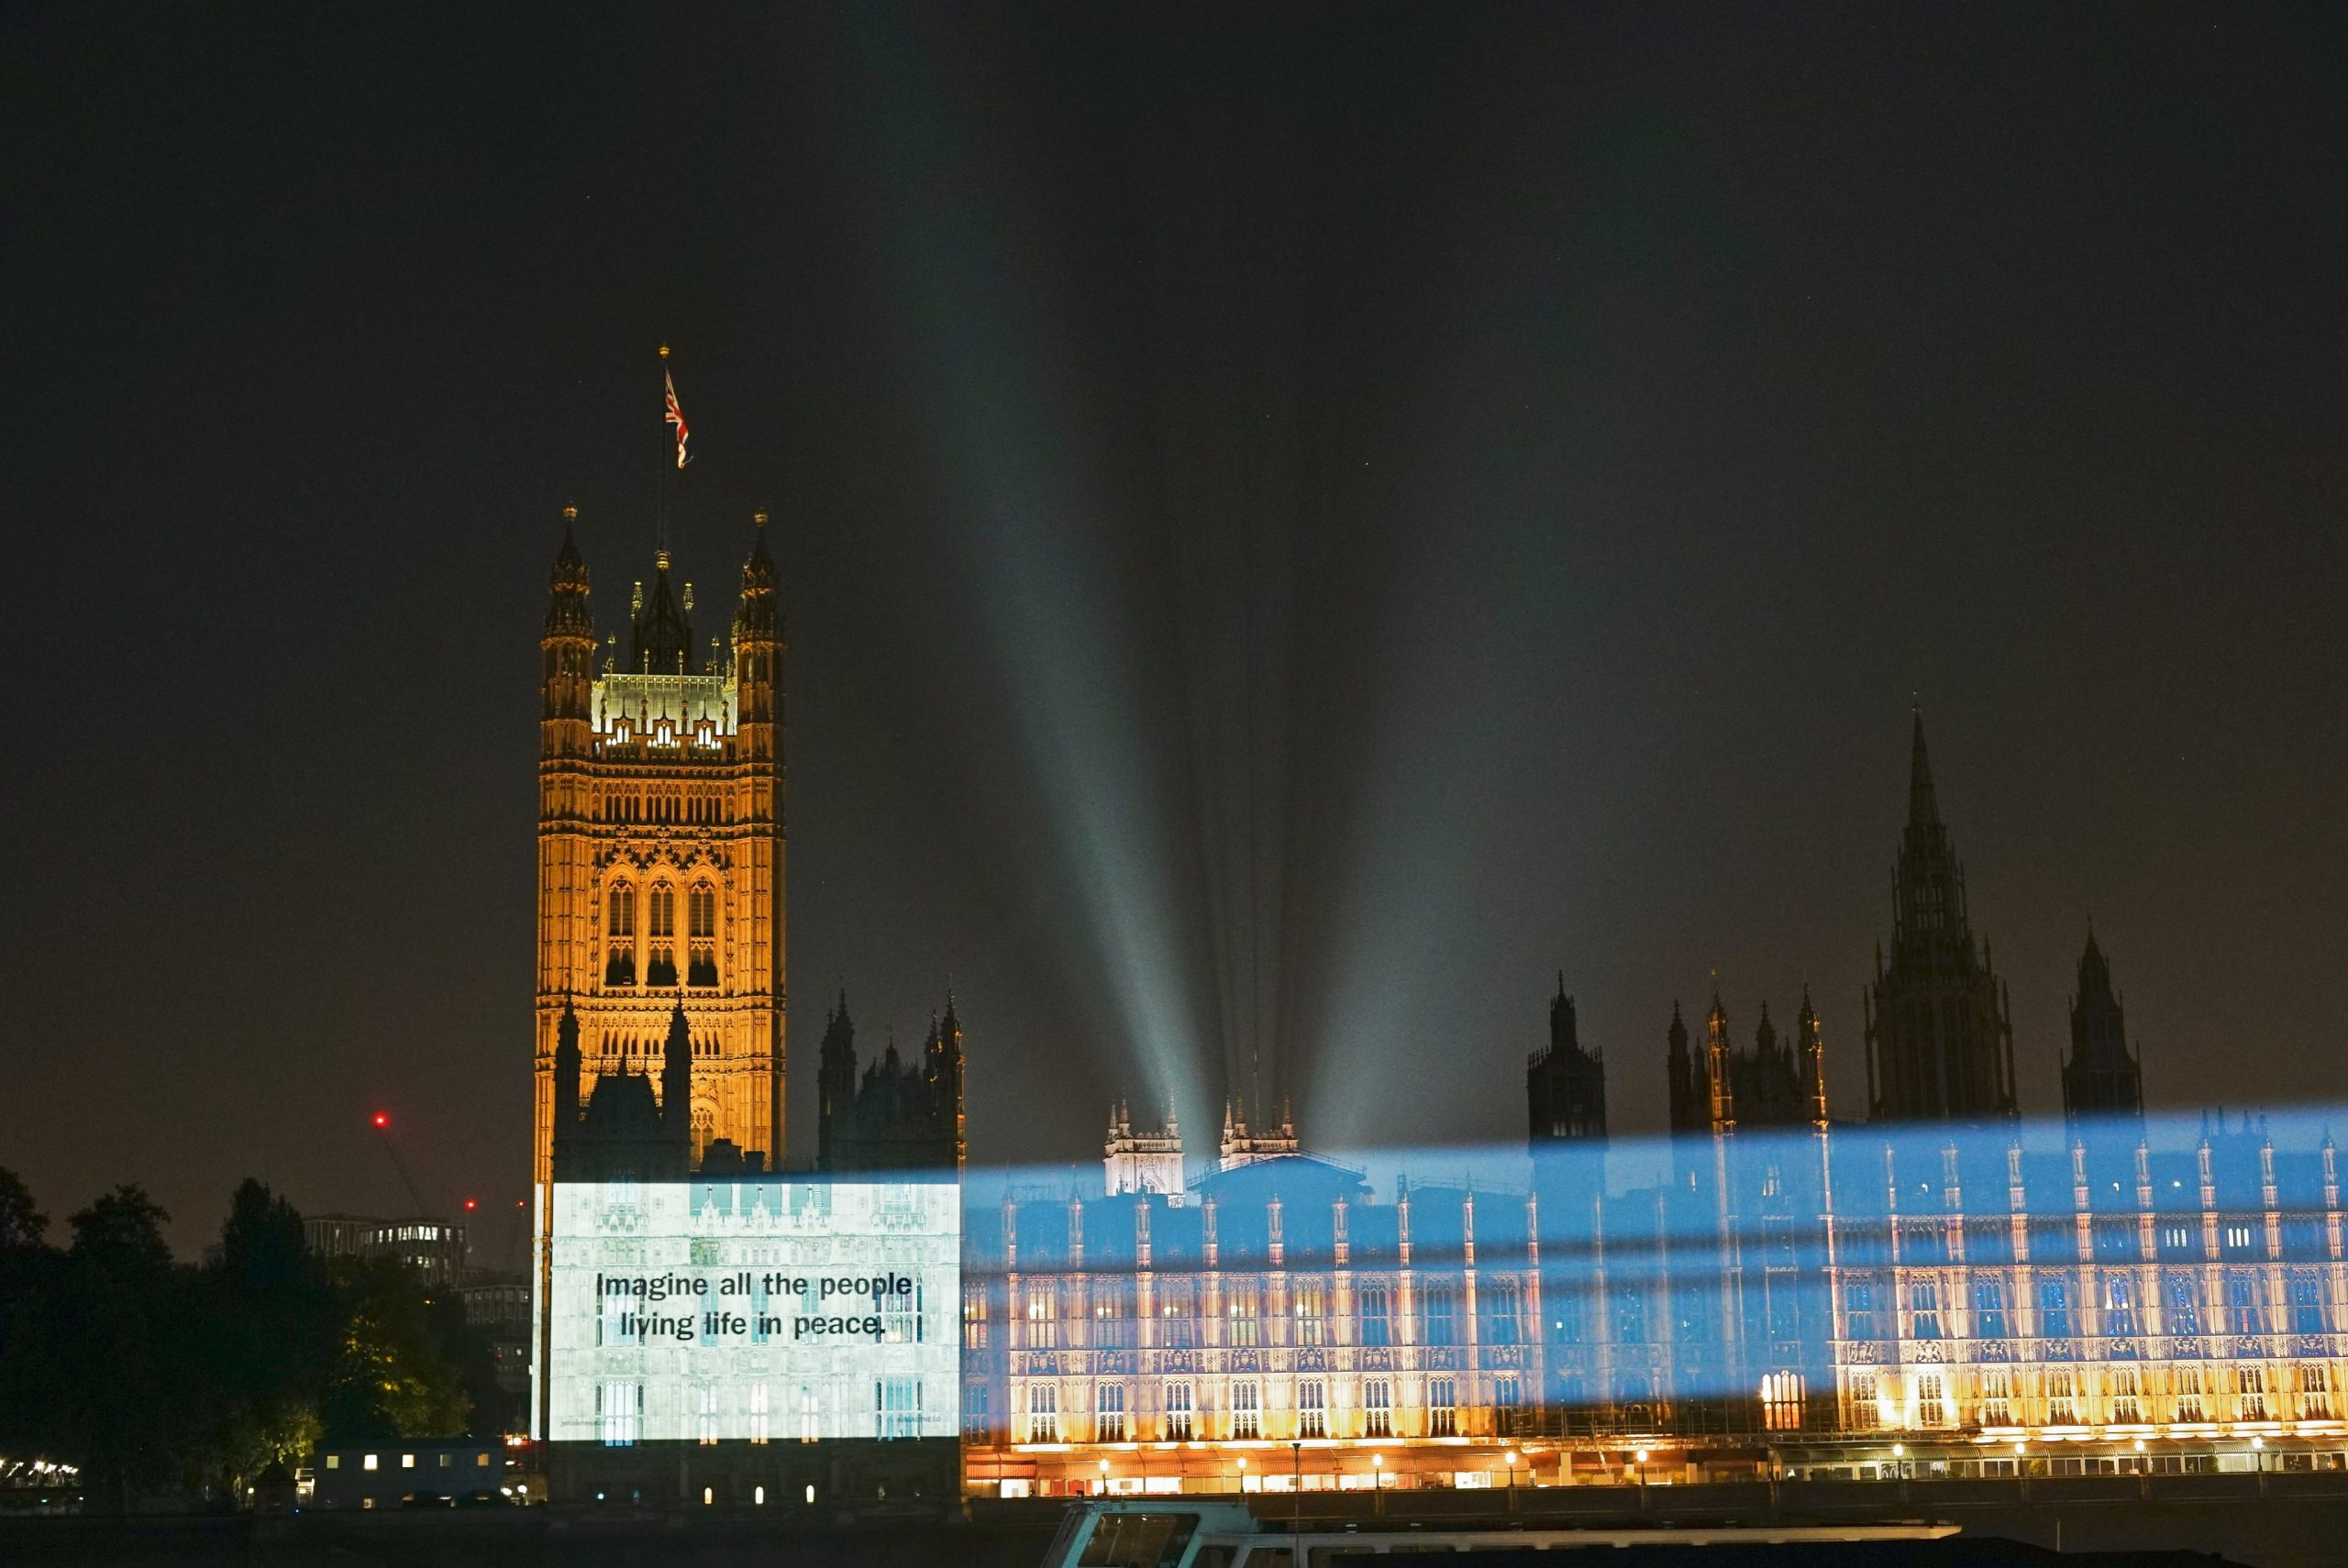 'Imagine' marks 50 years with lyric projected on landmarks